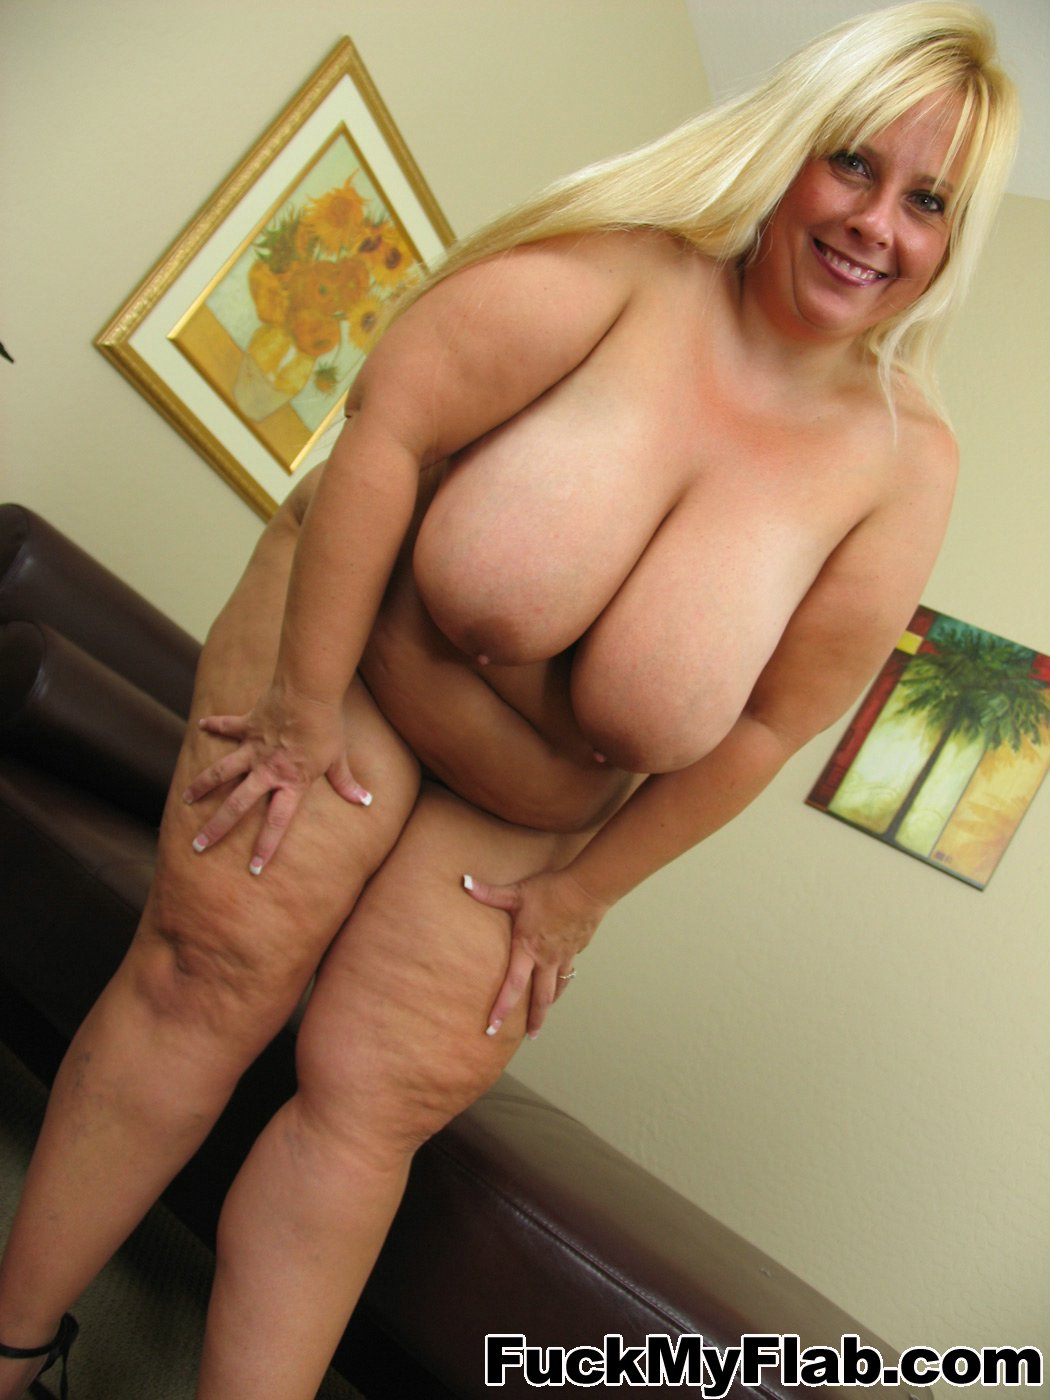 Fuck My Flab - Flabby blonde fucker at AmateurIndex.com